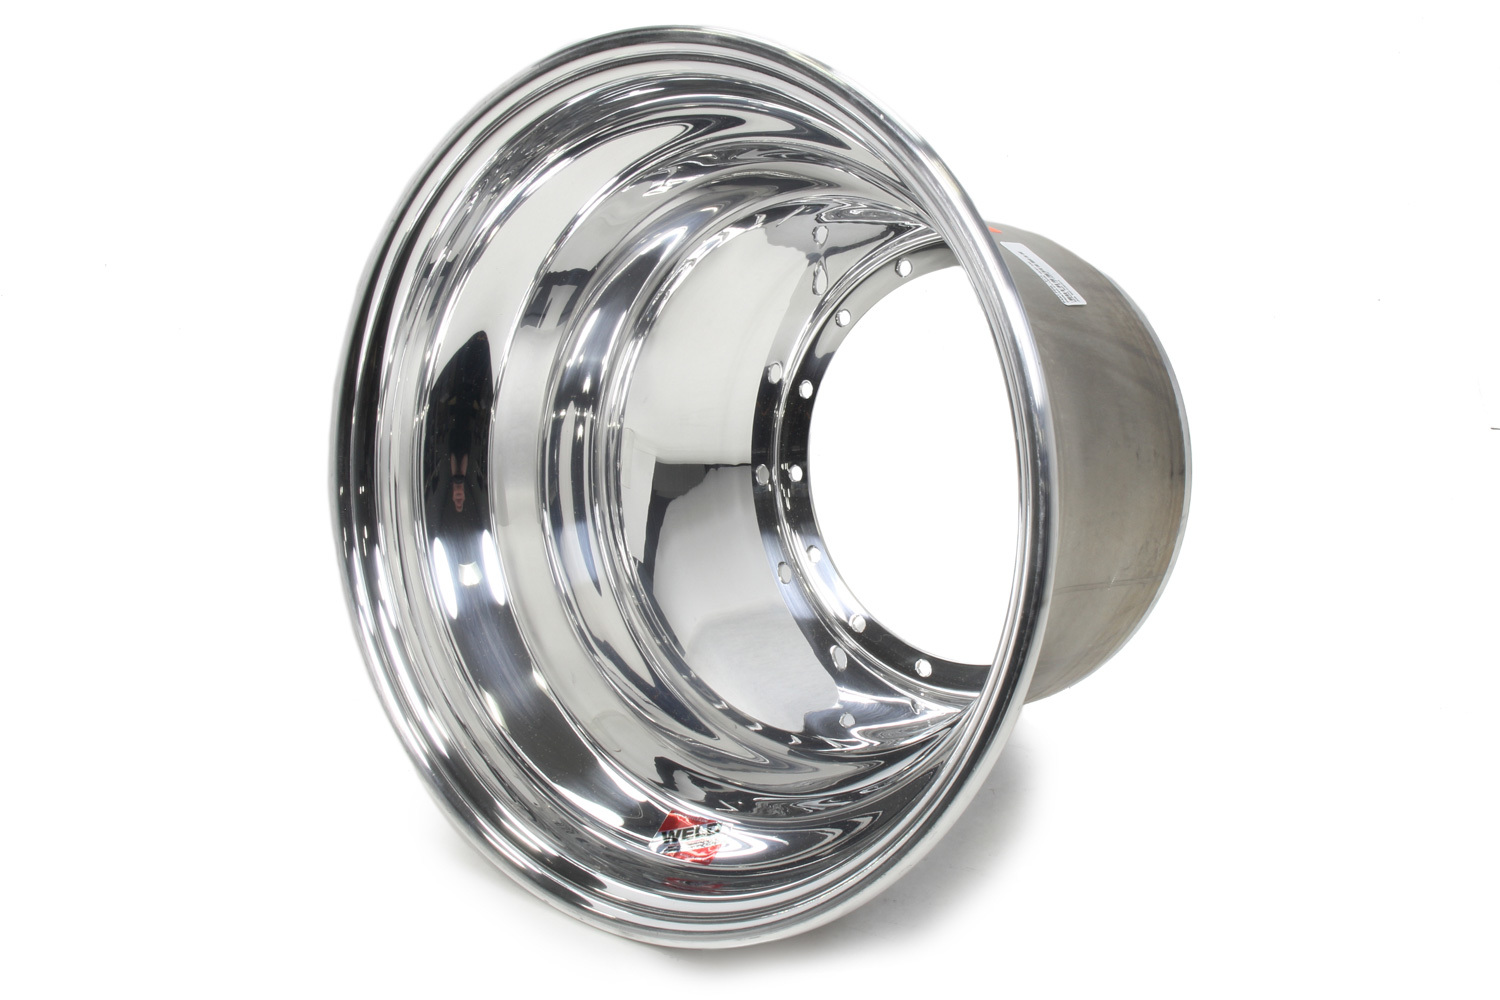 WELD RACING 15x11.25 Outer Rim Half Without Bead-Loc P/N - P858-5114